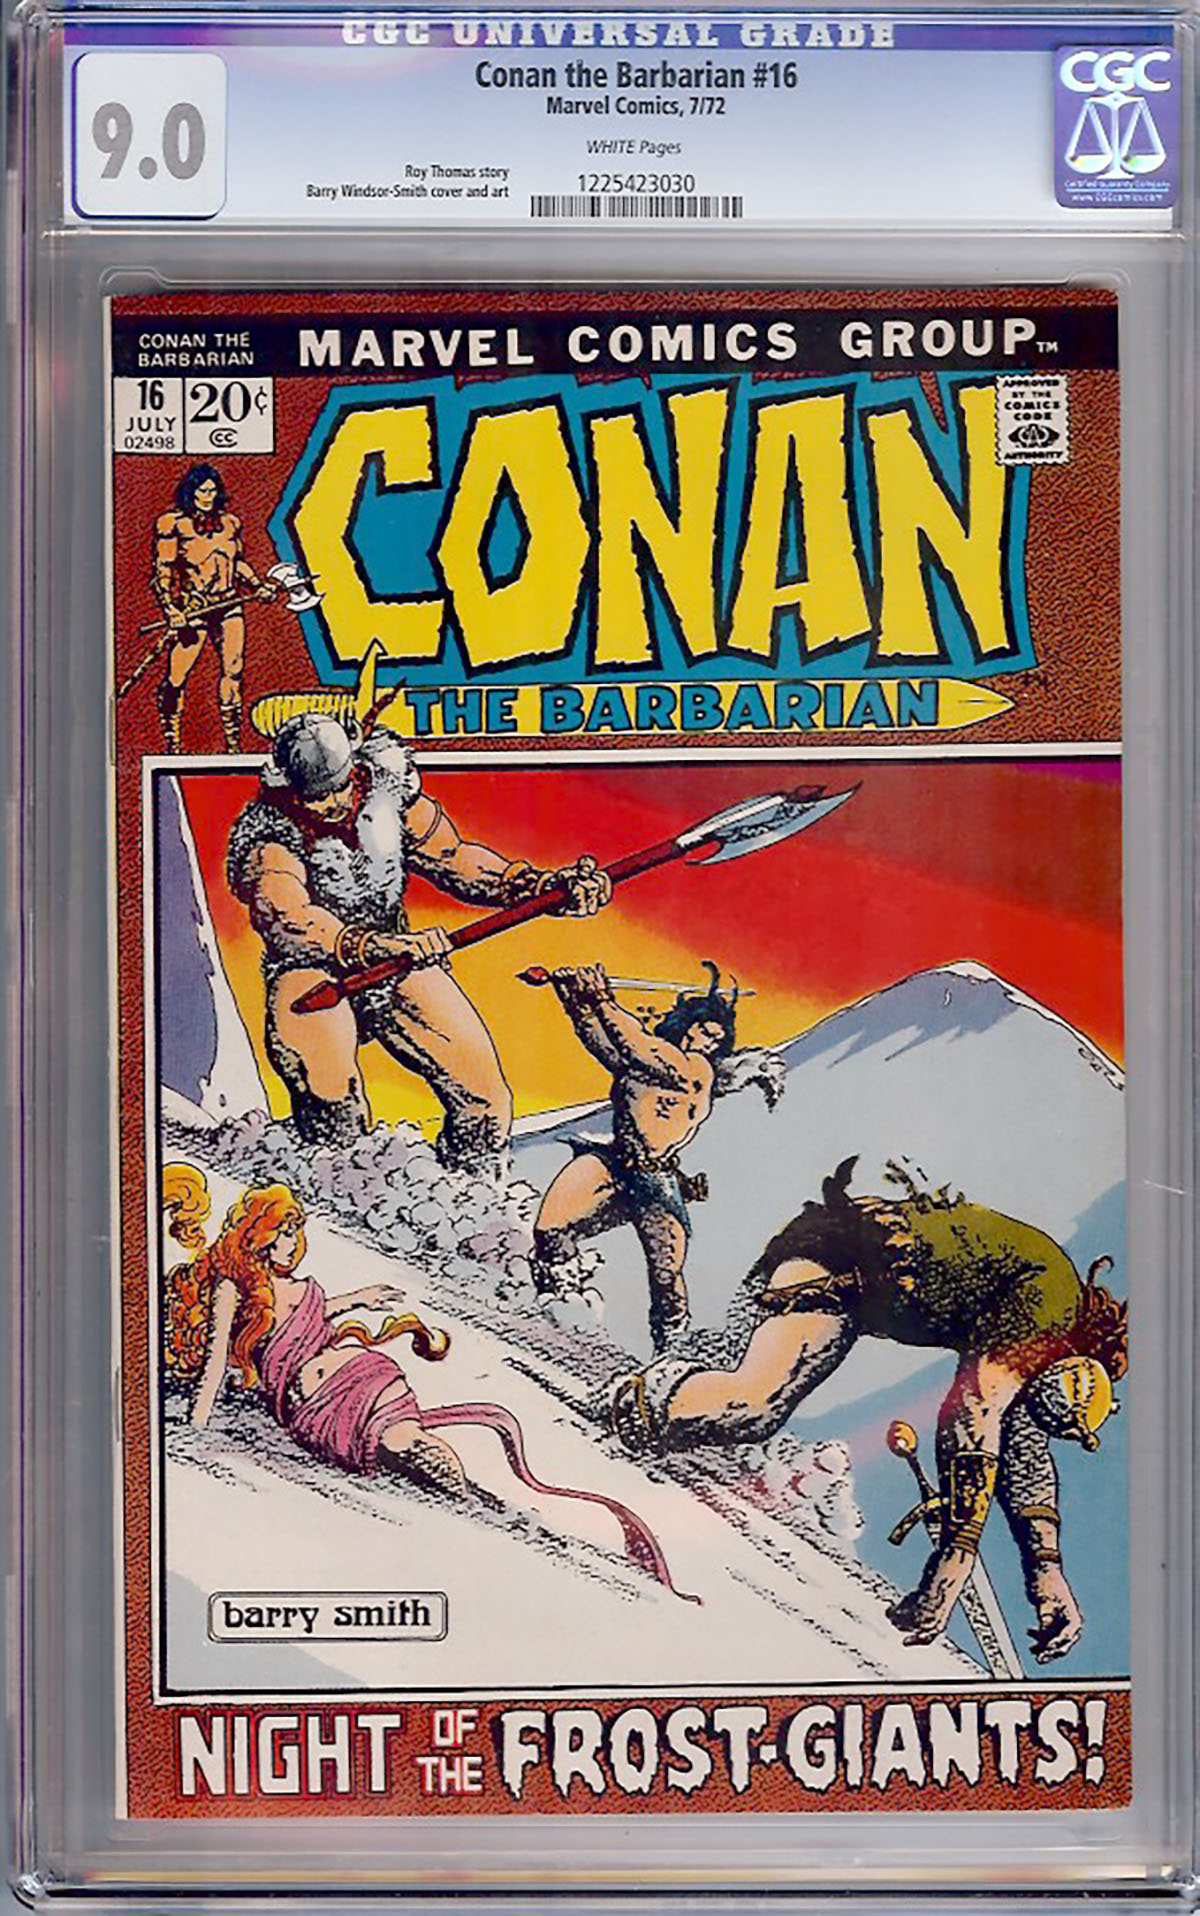 Conan The Barbarian #16 CGC 9.0 w